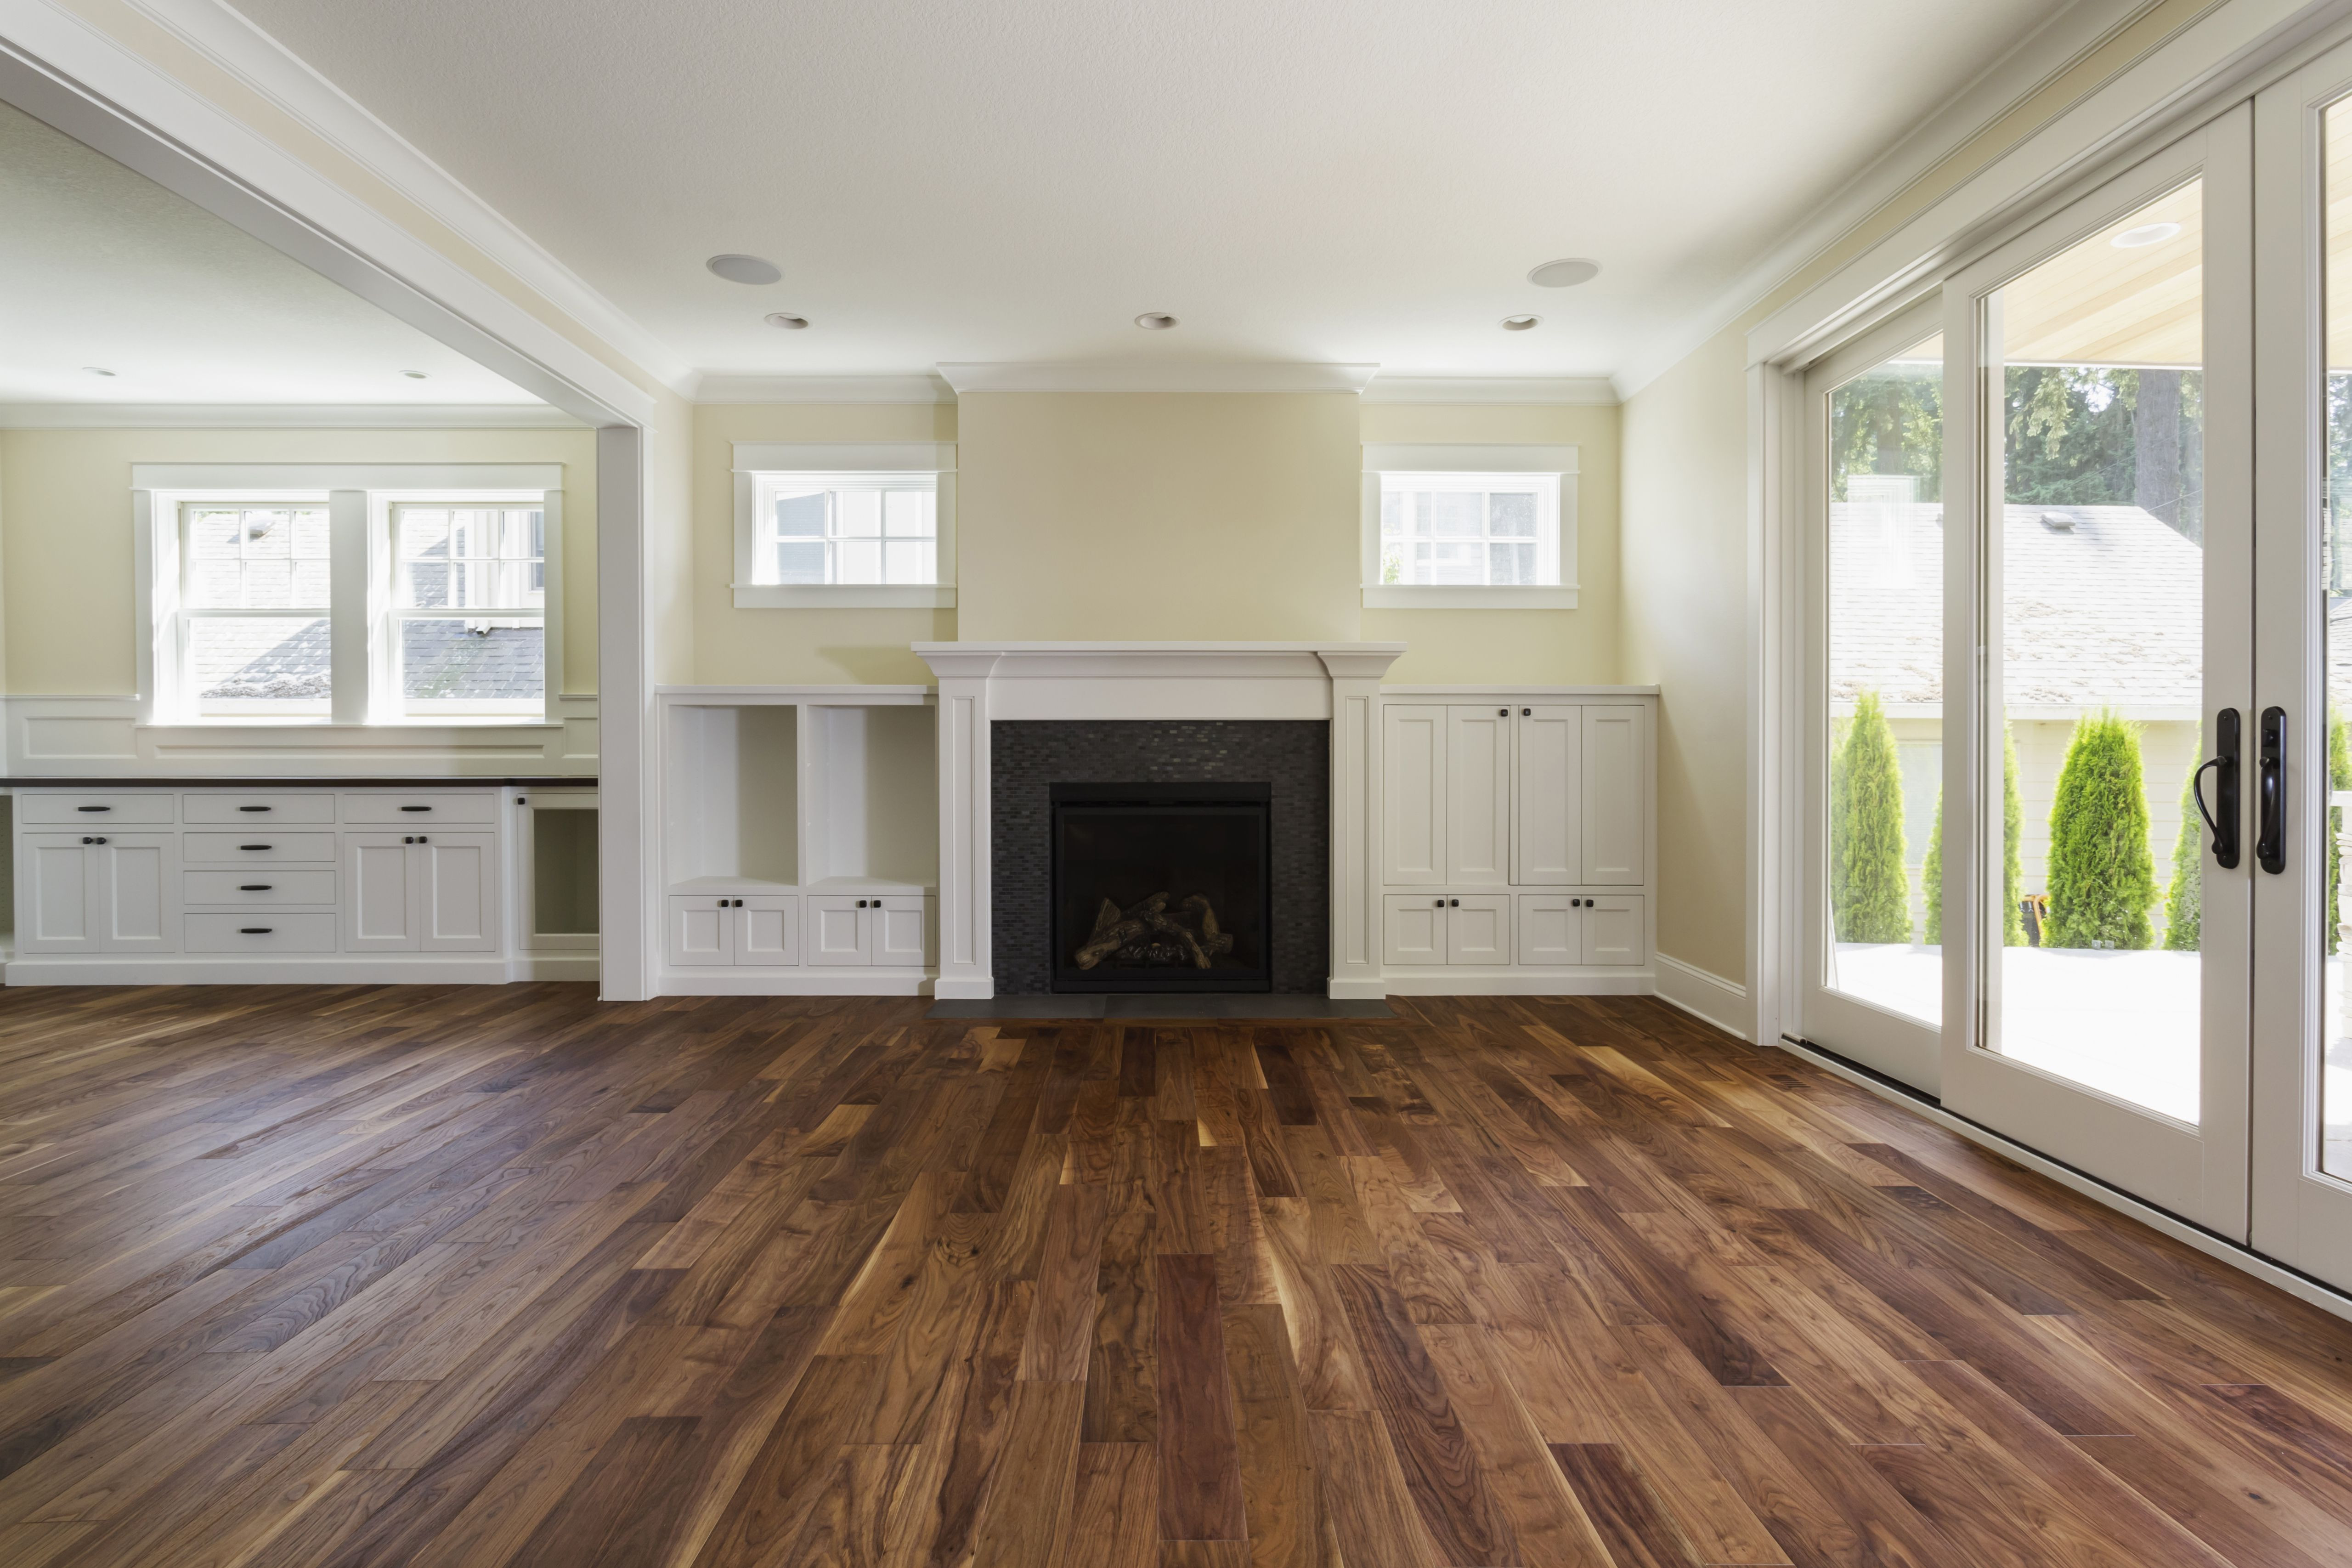 Hardwood Floor Stain Colors Popular Of the Pros and Cons Of Prefinished Hardwood Flooring Intended for Fireplace and Built In Shelves In Living Room 482143011 57bef8e33df78cc16e035397